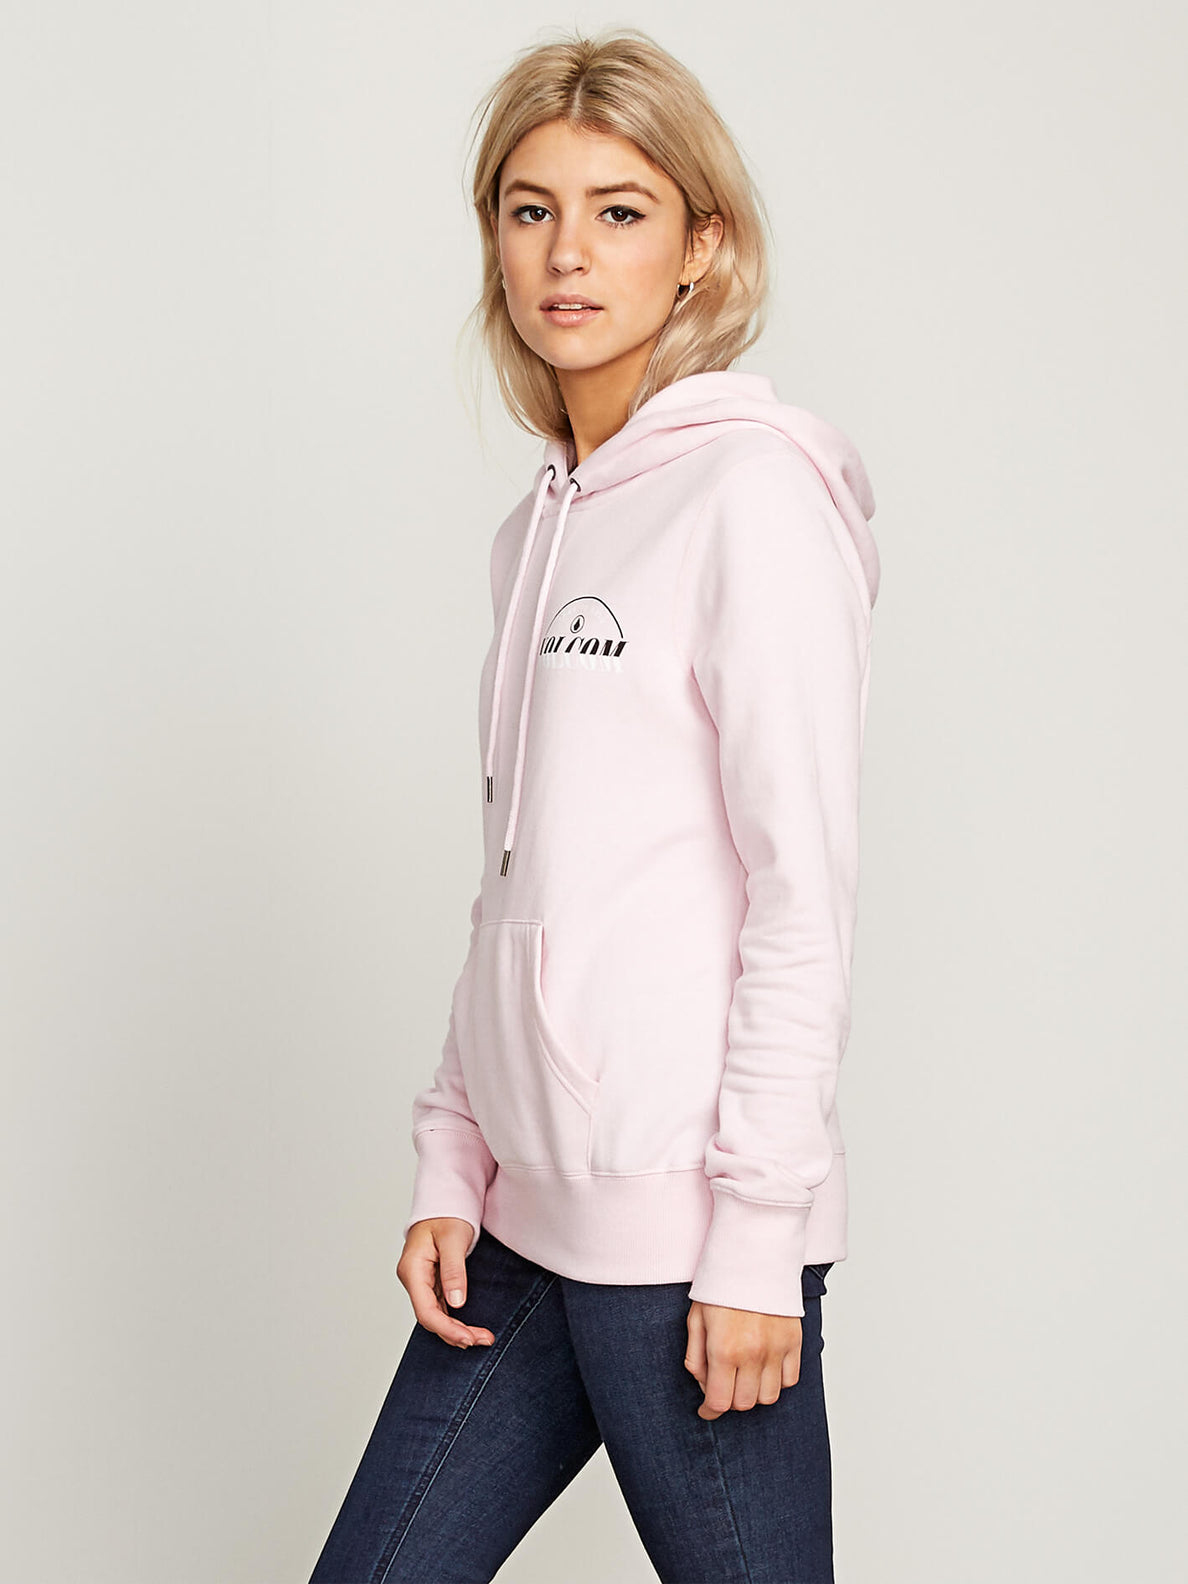 Vol Stone Hoodie In Faded Pink, Alternate View